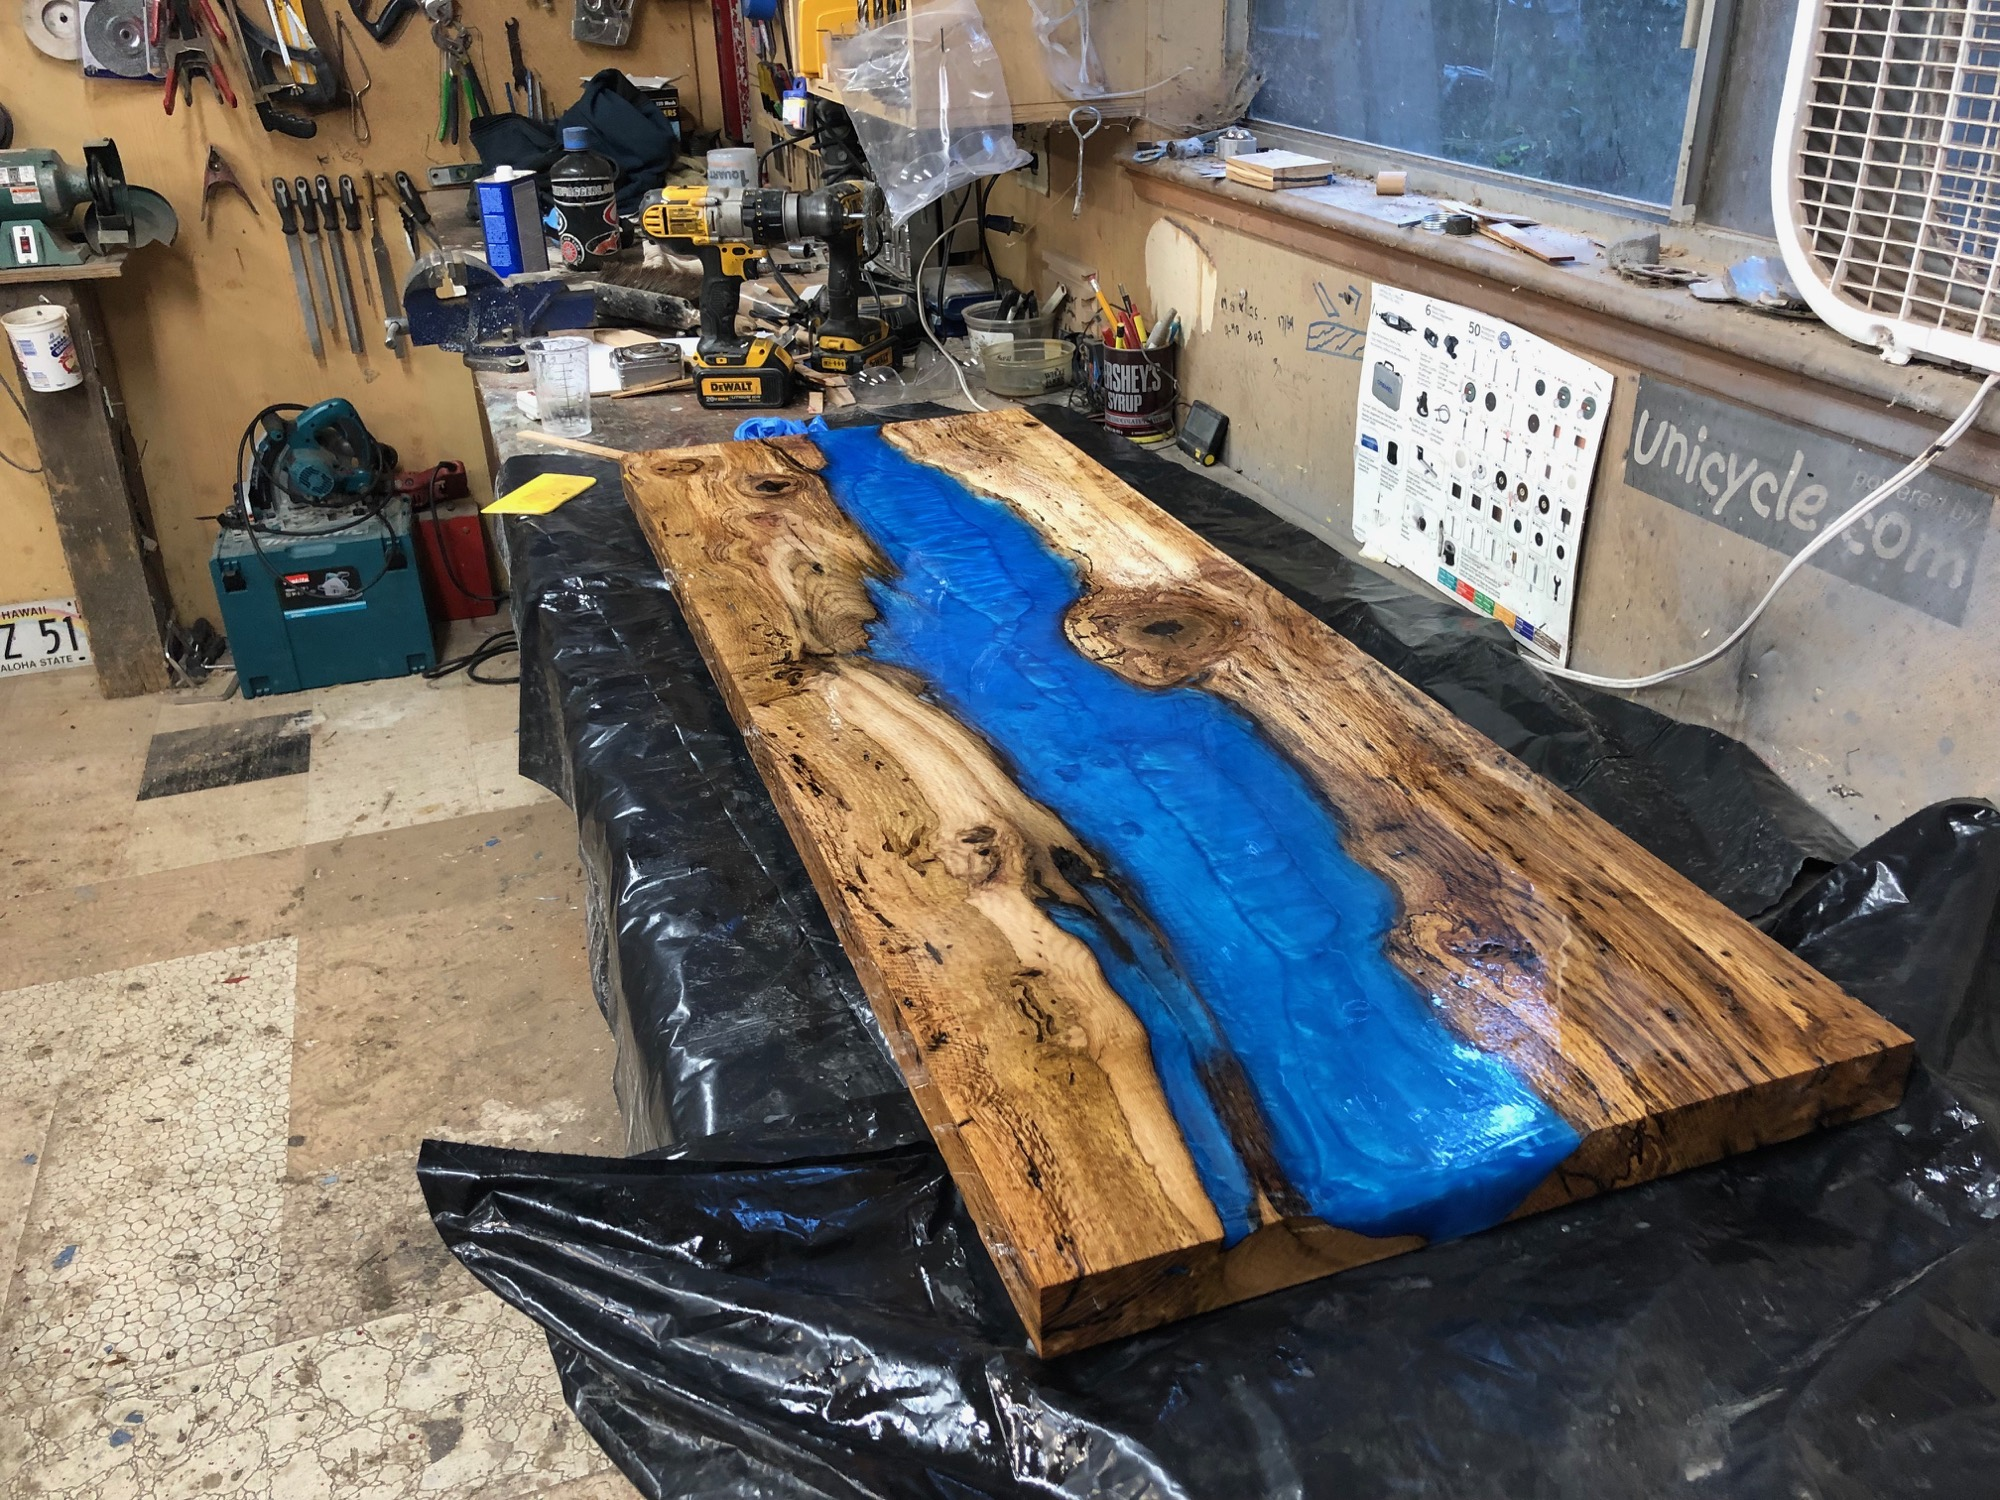 epoxy table fresh out of the mold